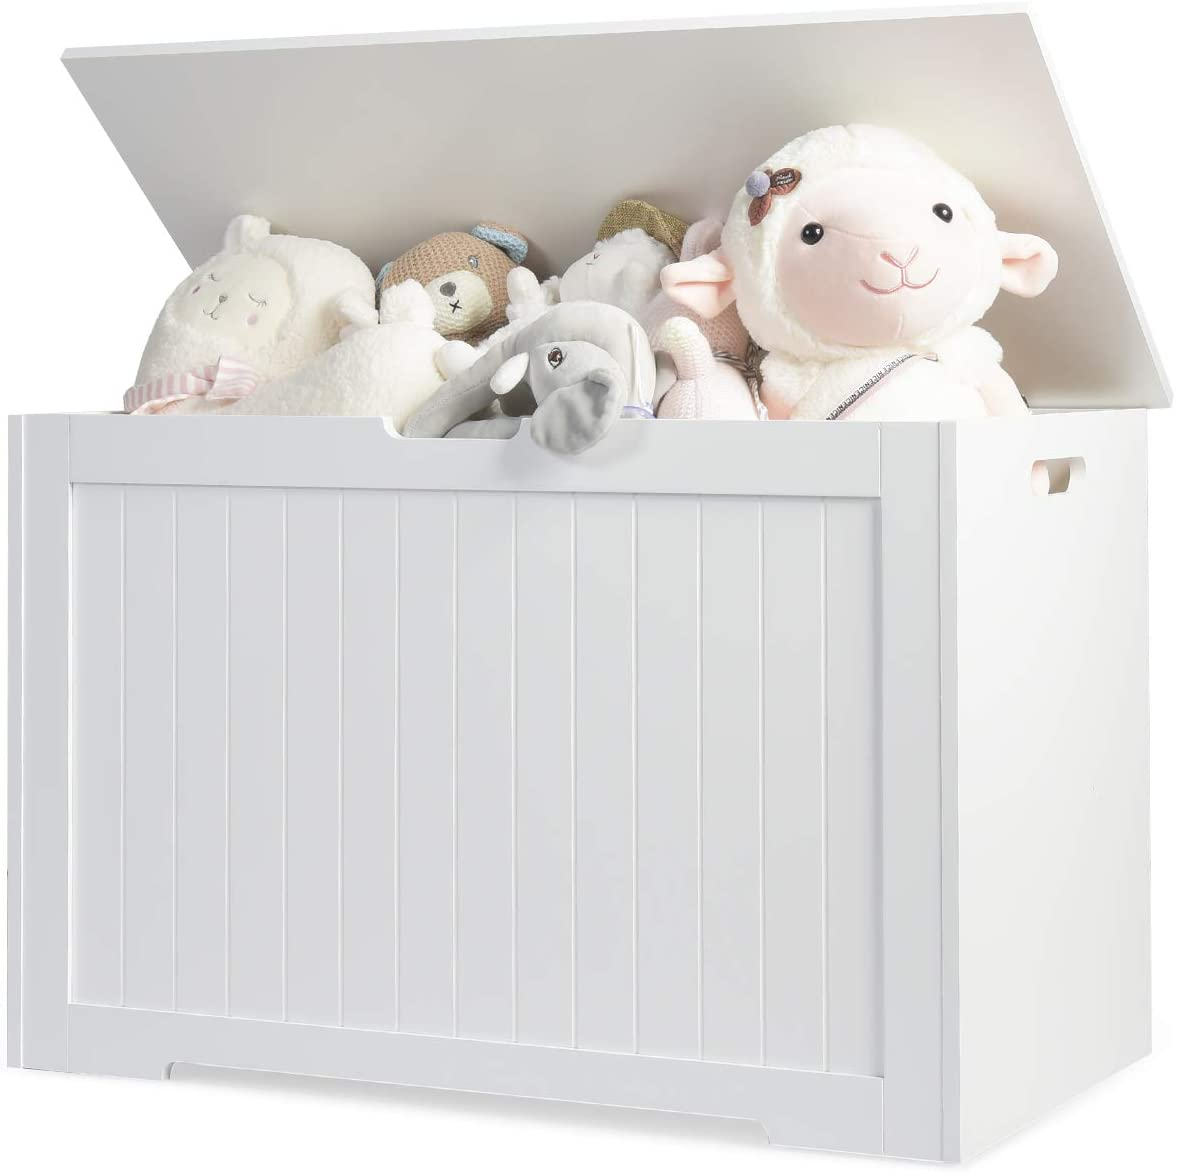 Costzon Wooden Toy Box Chest, Toy Organizer with Flip-Top Lid, Heavy-Duty Toy Cabinets for Kids, Finger-Pinch Prevention Toy Storage Case for Bedroom/Living Room/Kindergarten (White)